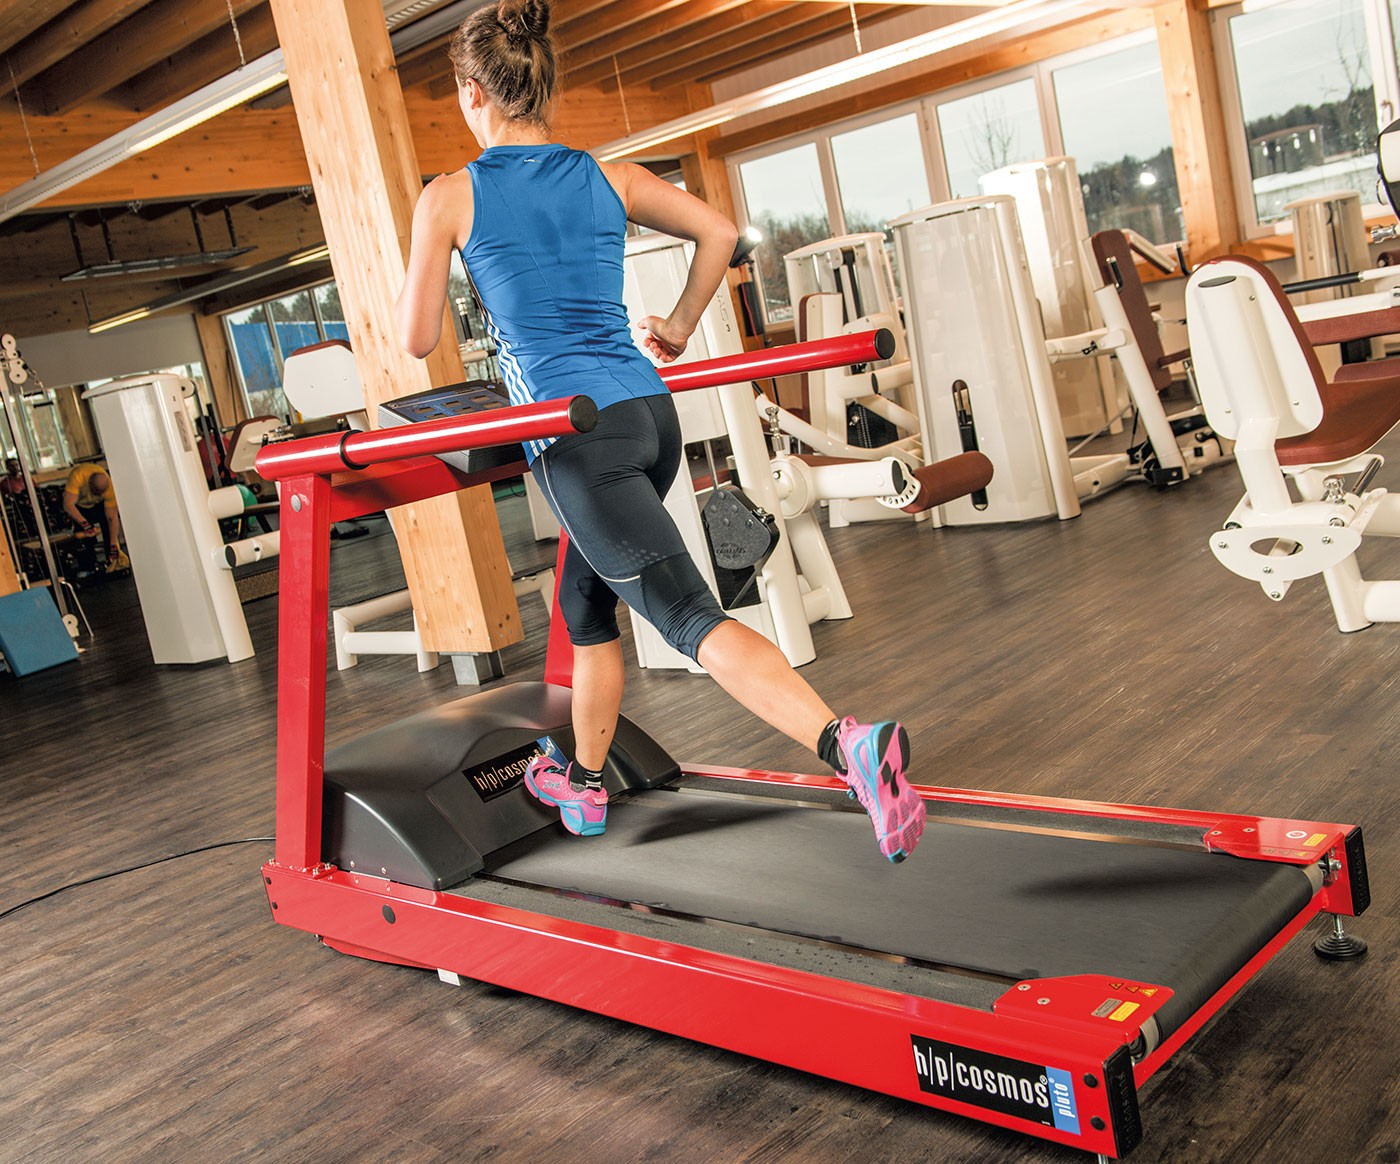 h/p/cosmos treadmill ergometer pluto: very low maintenance, comfortable running surface, advanced construction.